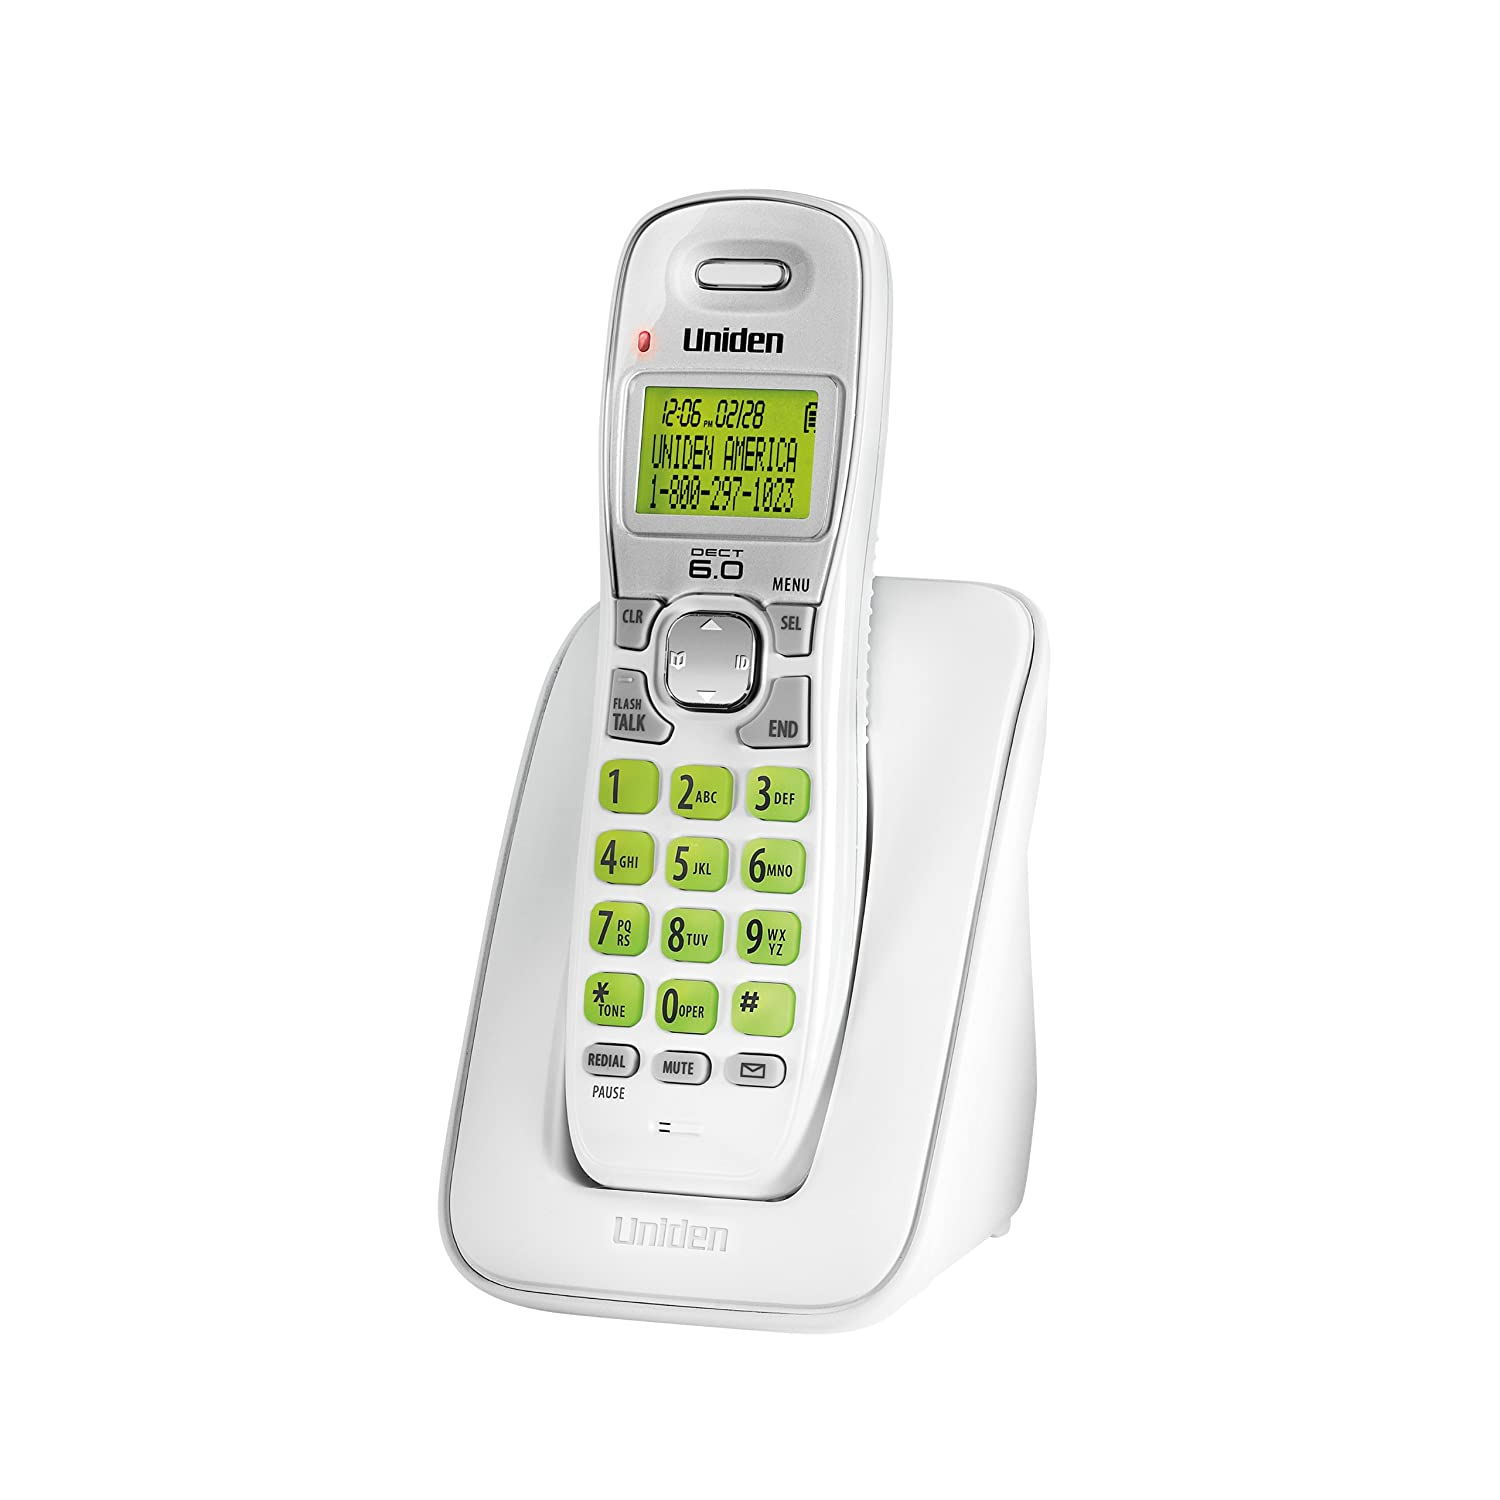 Amazon.com : Uniden DECT 6.0 Cordless Phone with Caller ID and Call Waiting  - White (D1364) : Standard Cell Phone Chargers : Electronics